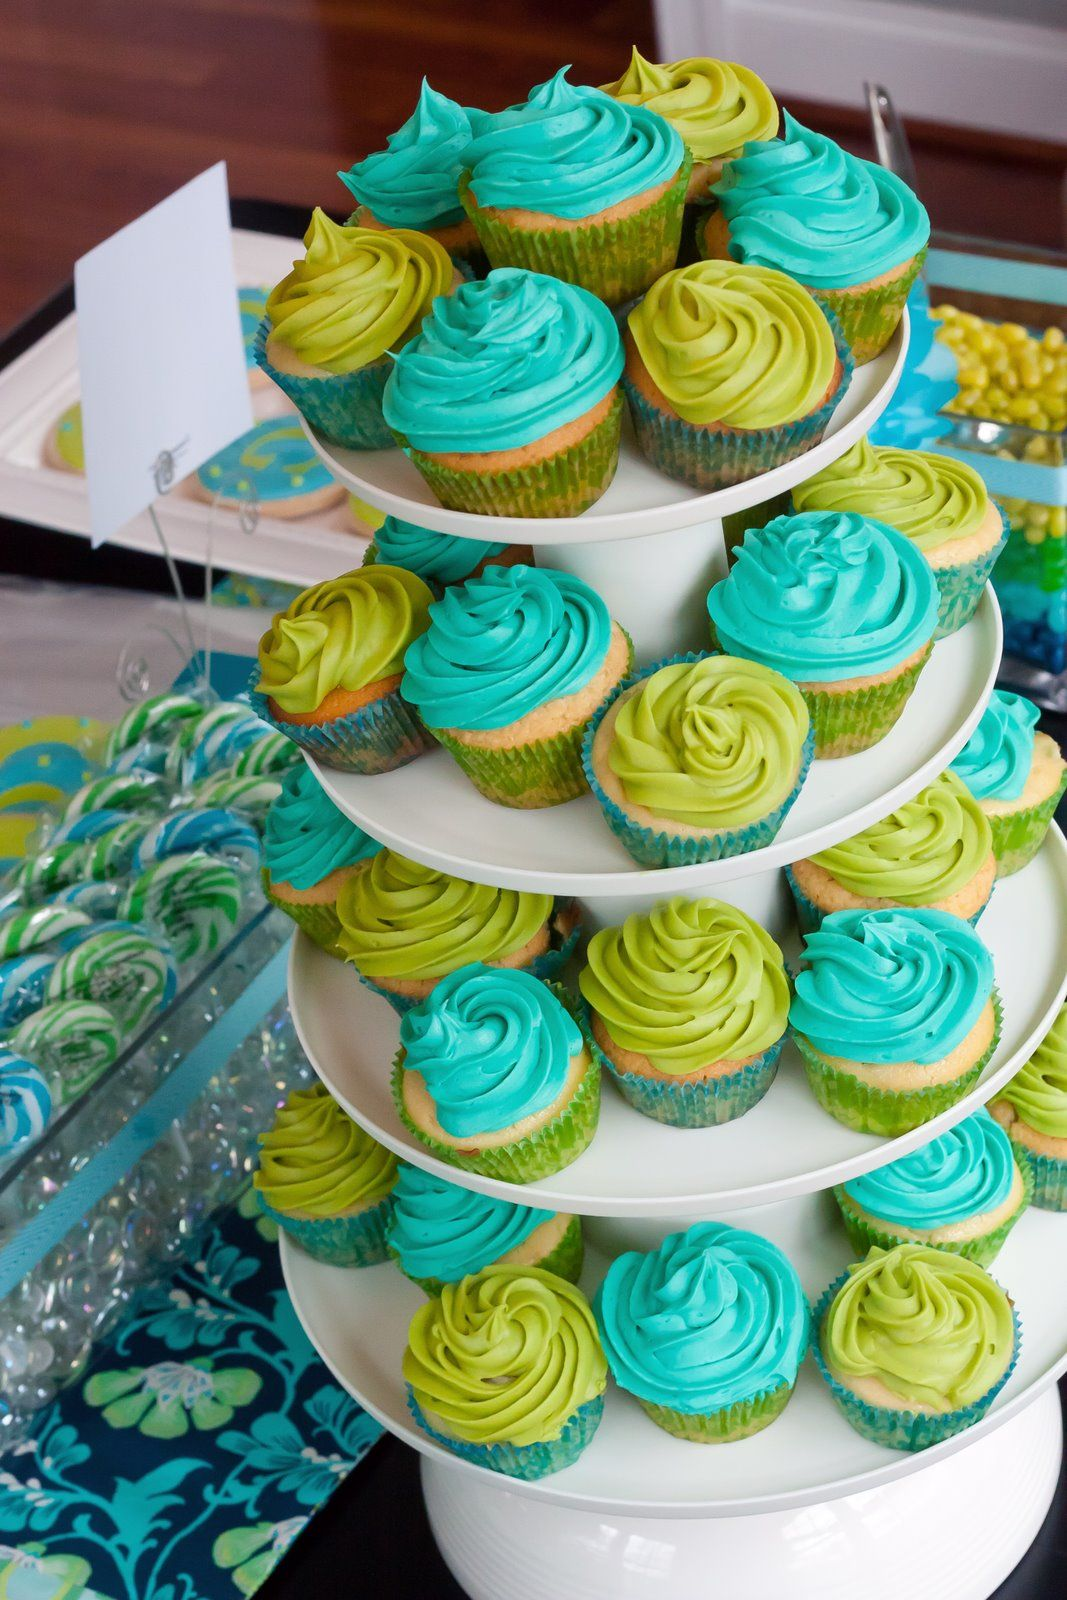 Turquoise and green cupcakes for the birthday boy!